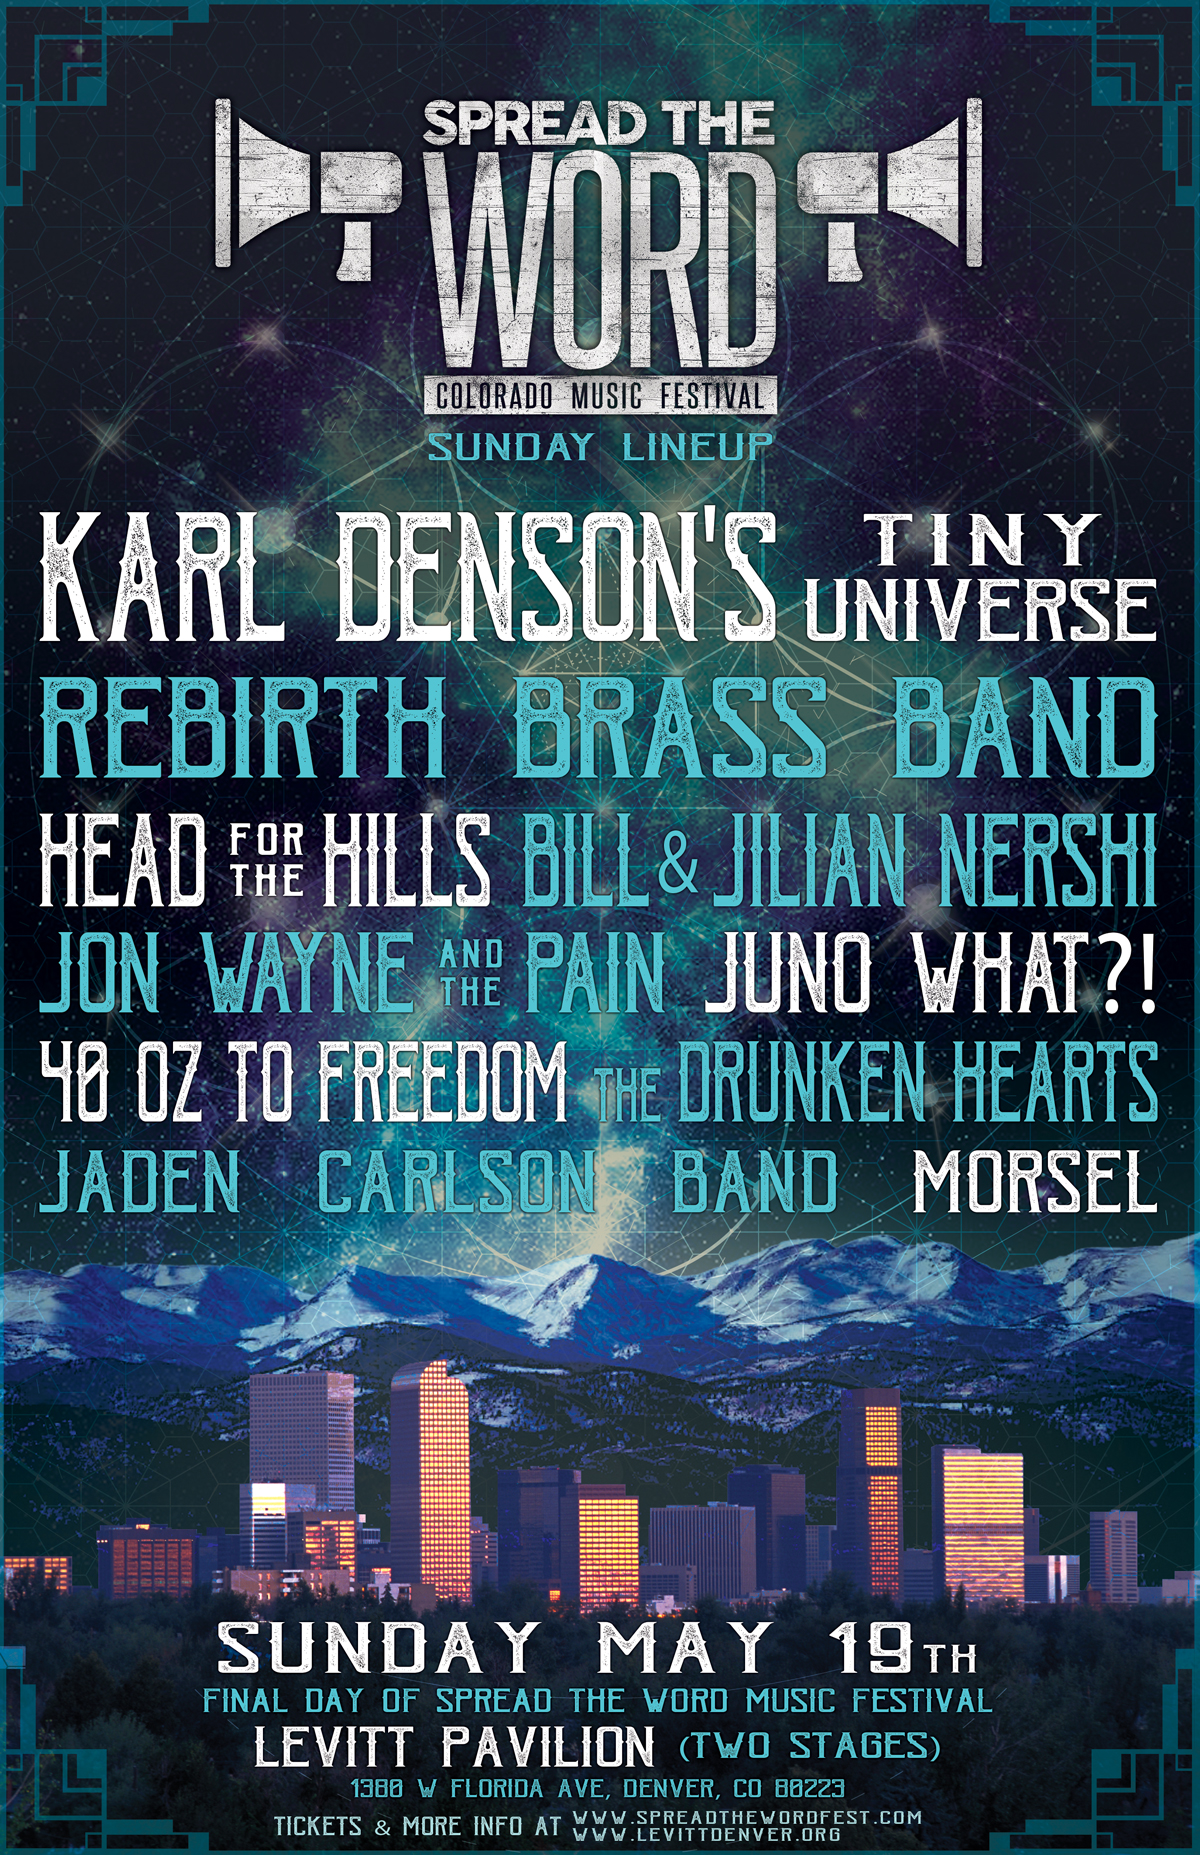 Spread The Word Colorado Music Festival